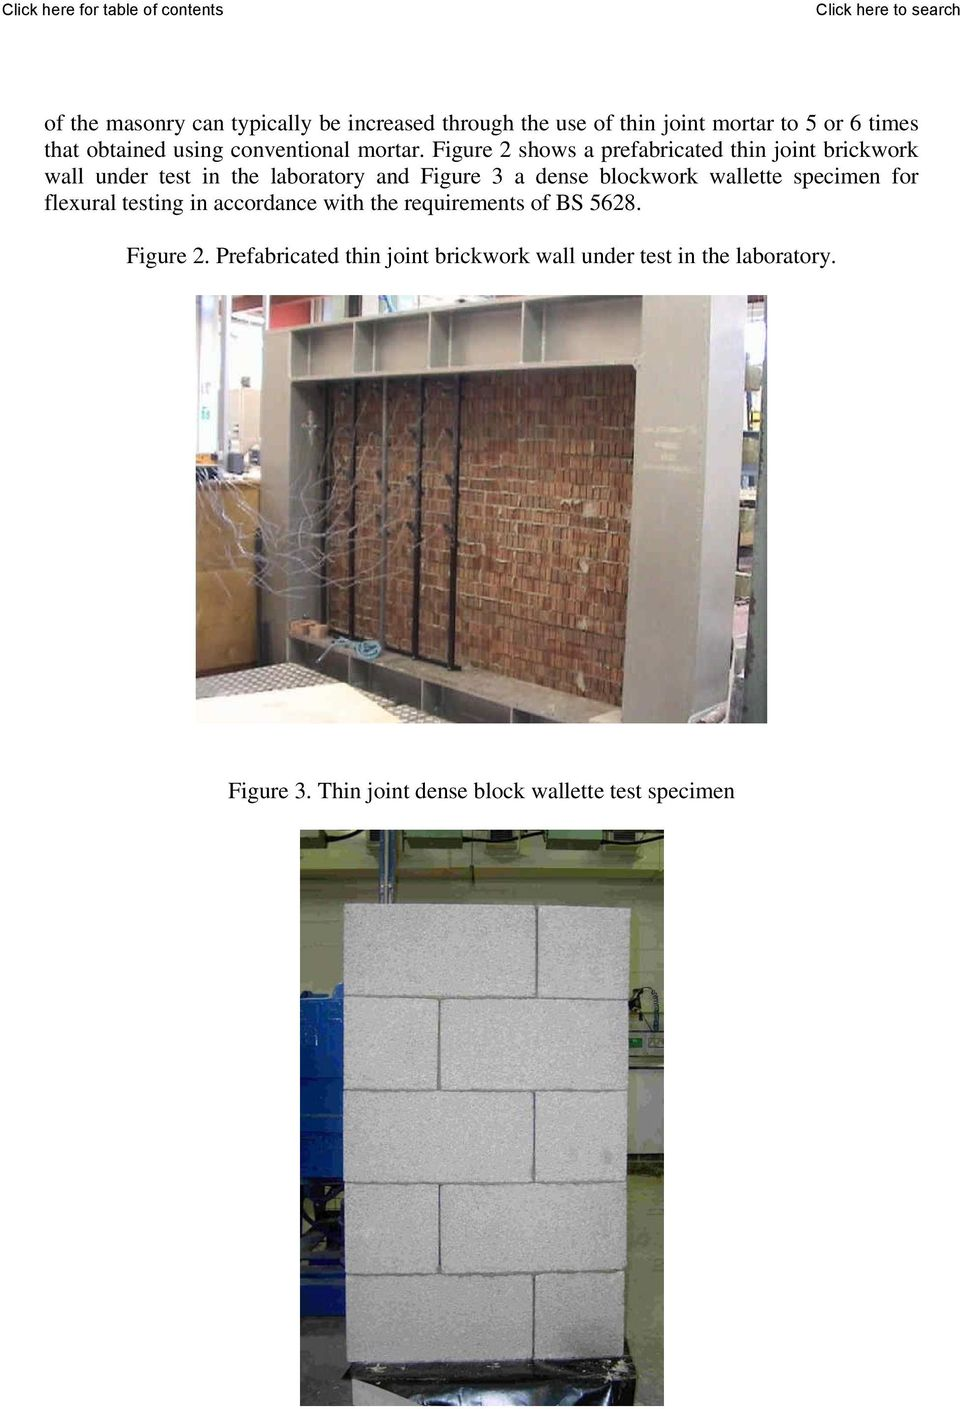 Figure 2 shows a prefabricated thin joint brickwork wall under test in the laboratory and Figure 3 a dense blockwork